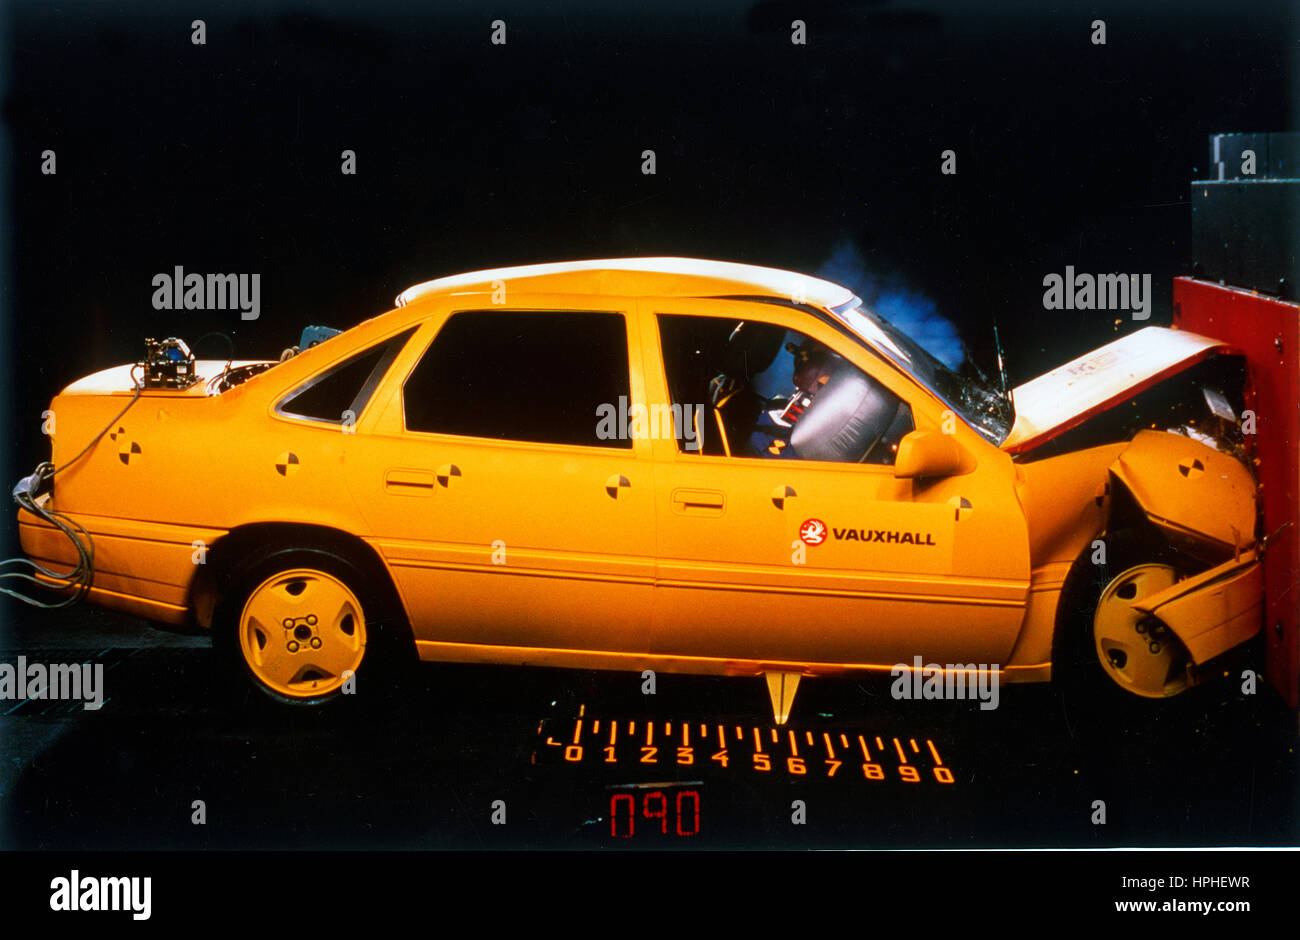 Vauxhall Cavalier crash test 1993 - Stock Image